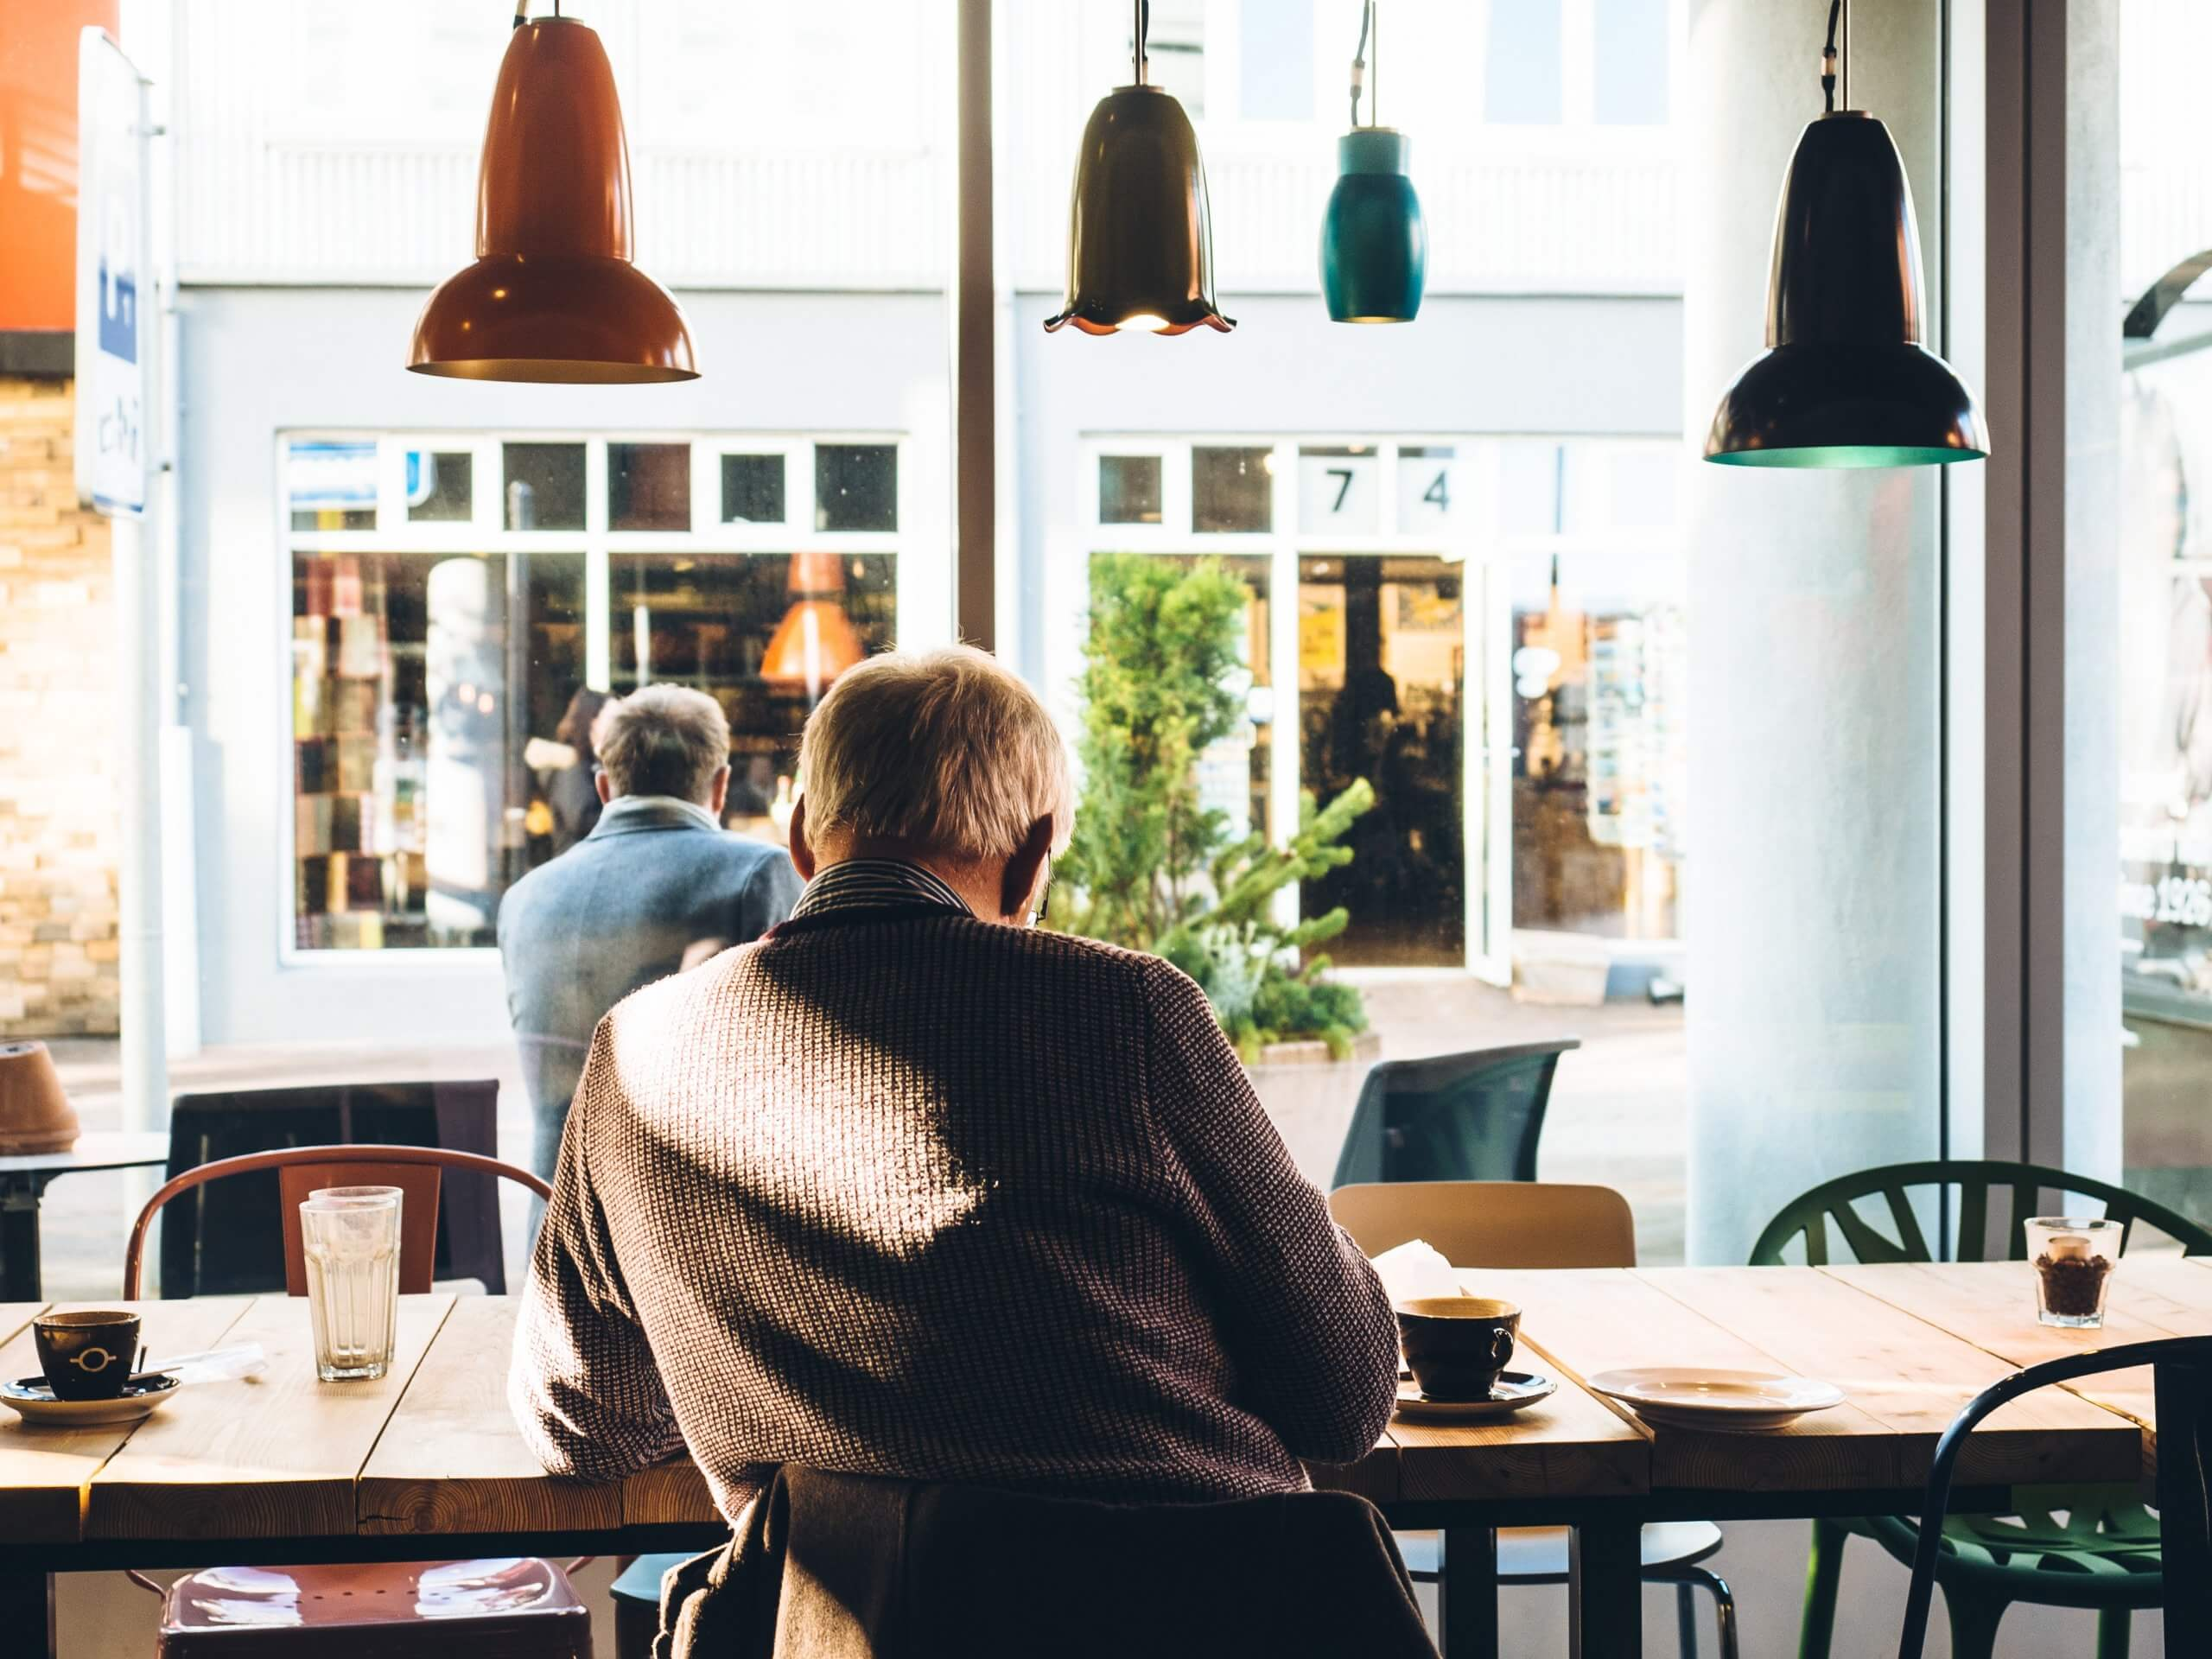 Image of an elderly man sat at a coffee table looking out of a window. He seems to be in a cafe.